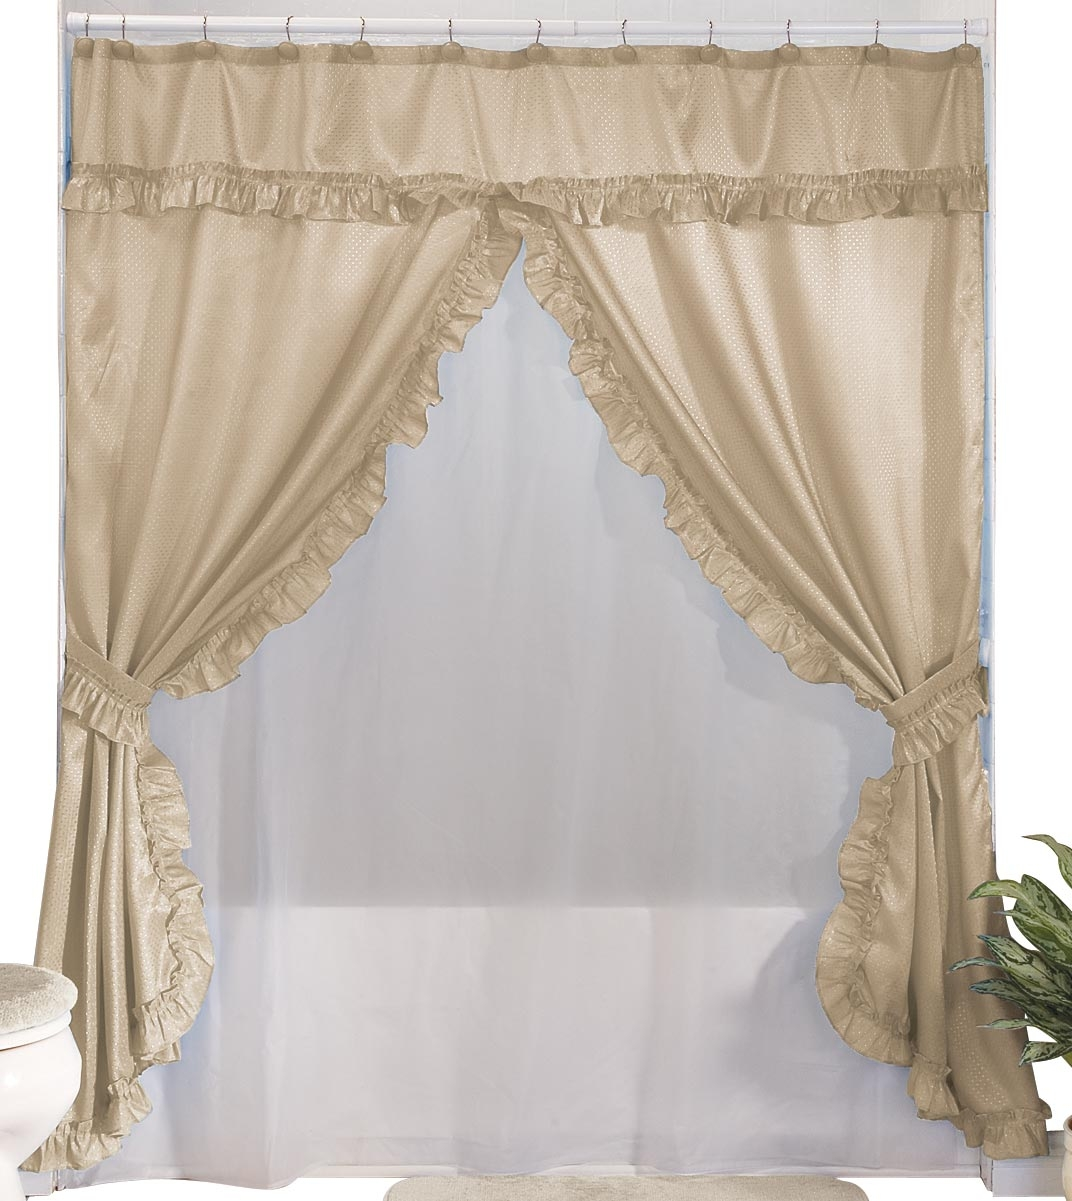 Merveilleux Double Swag Shower Curtain Attached Valance